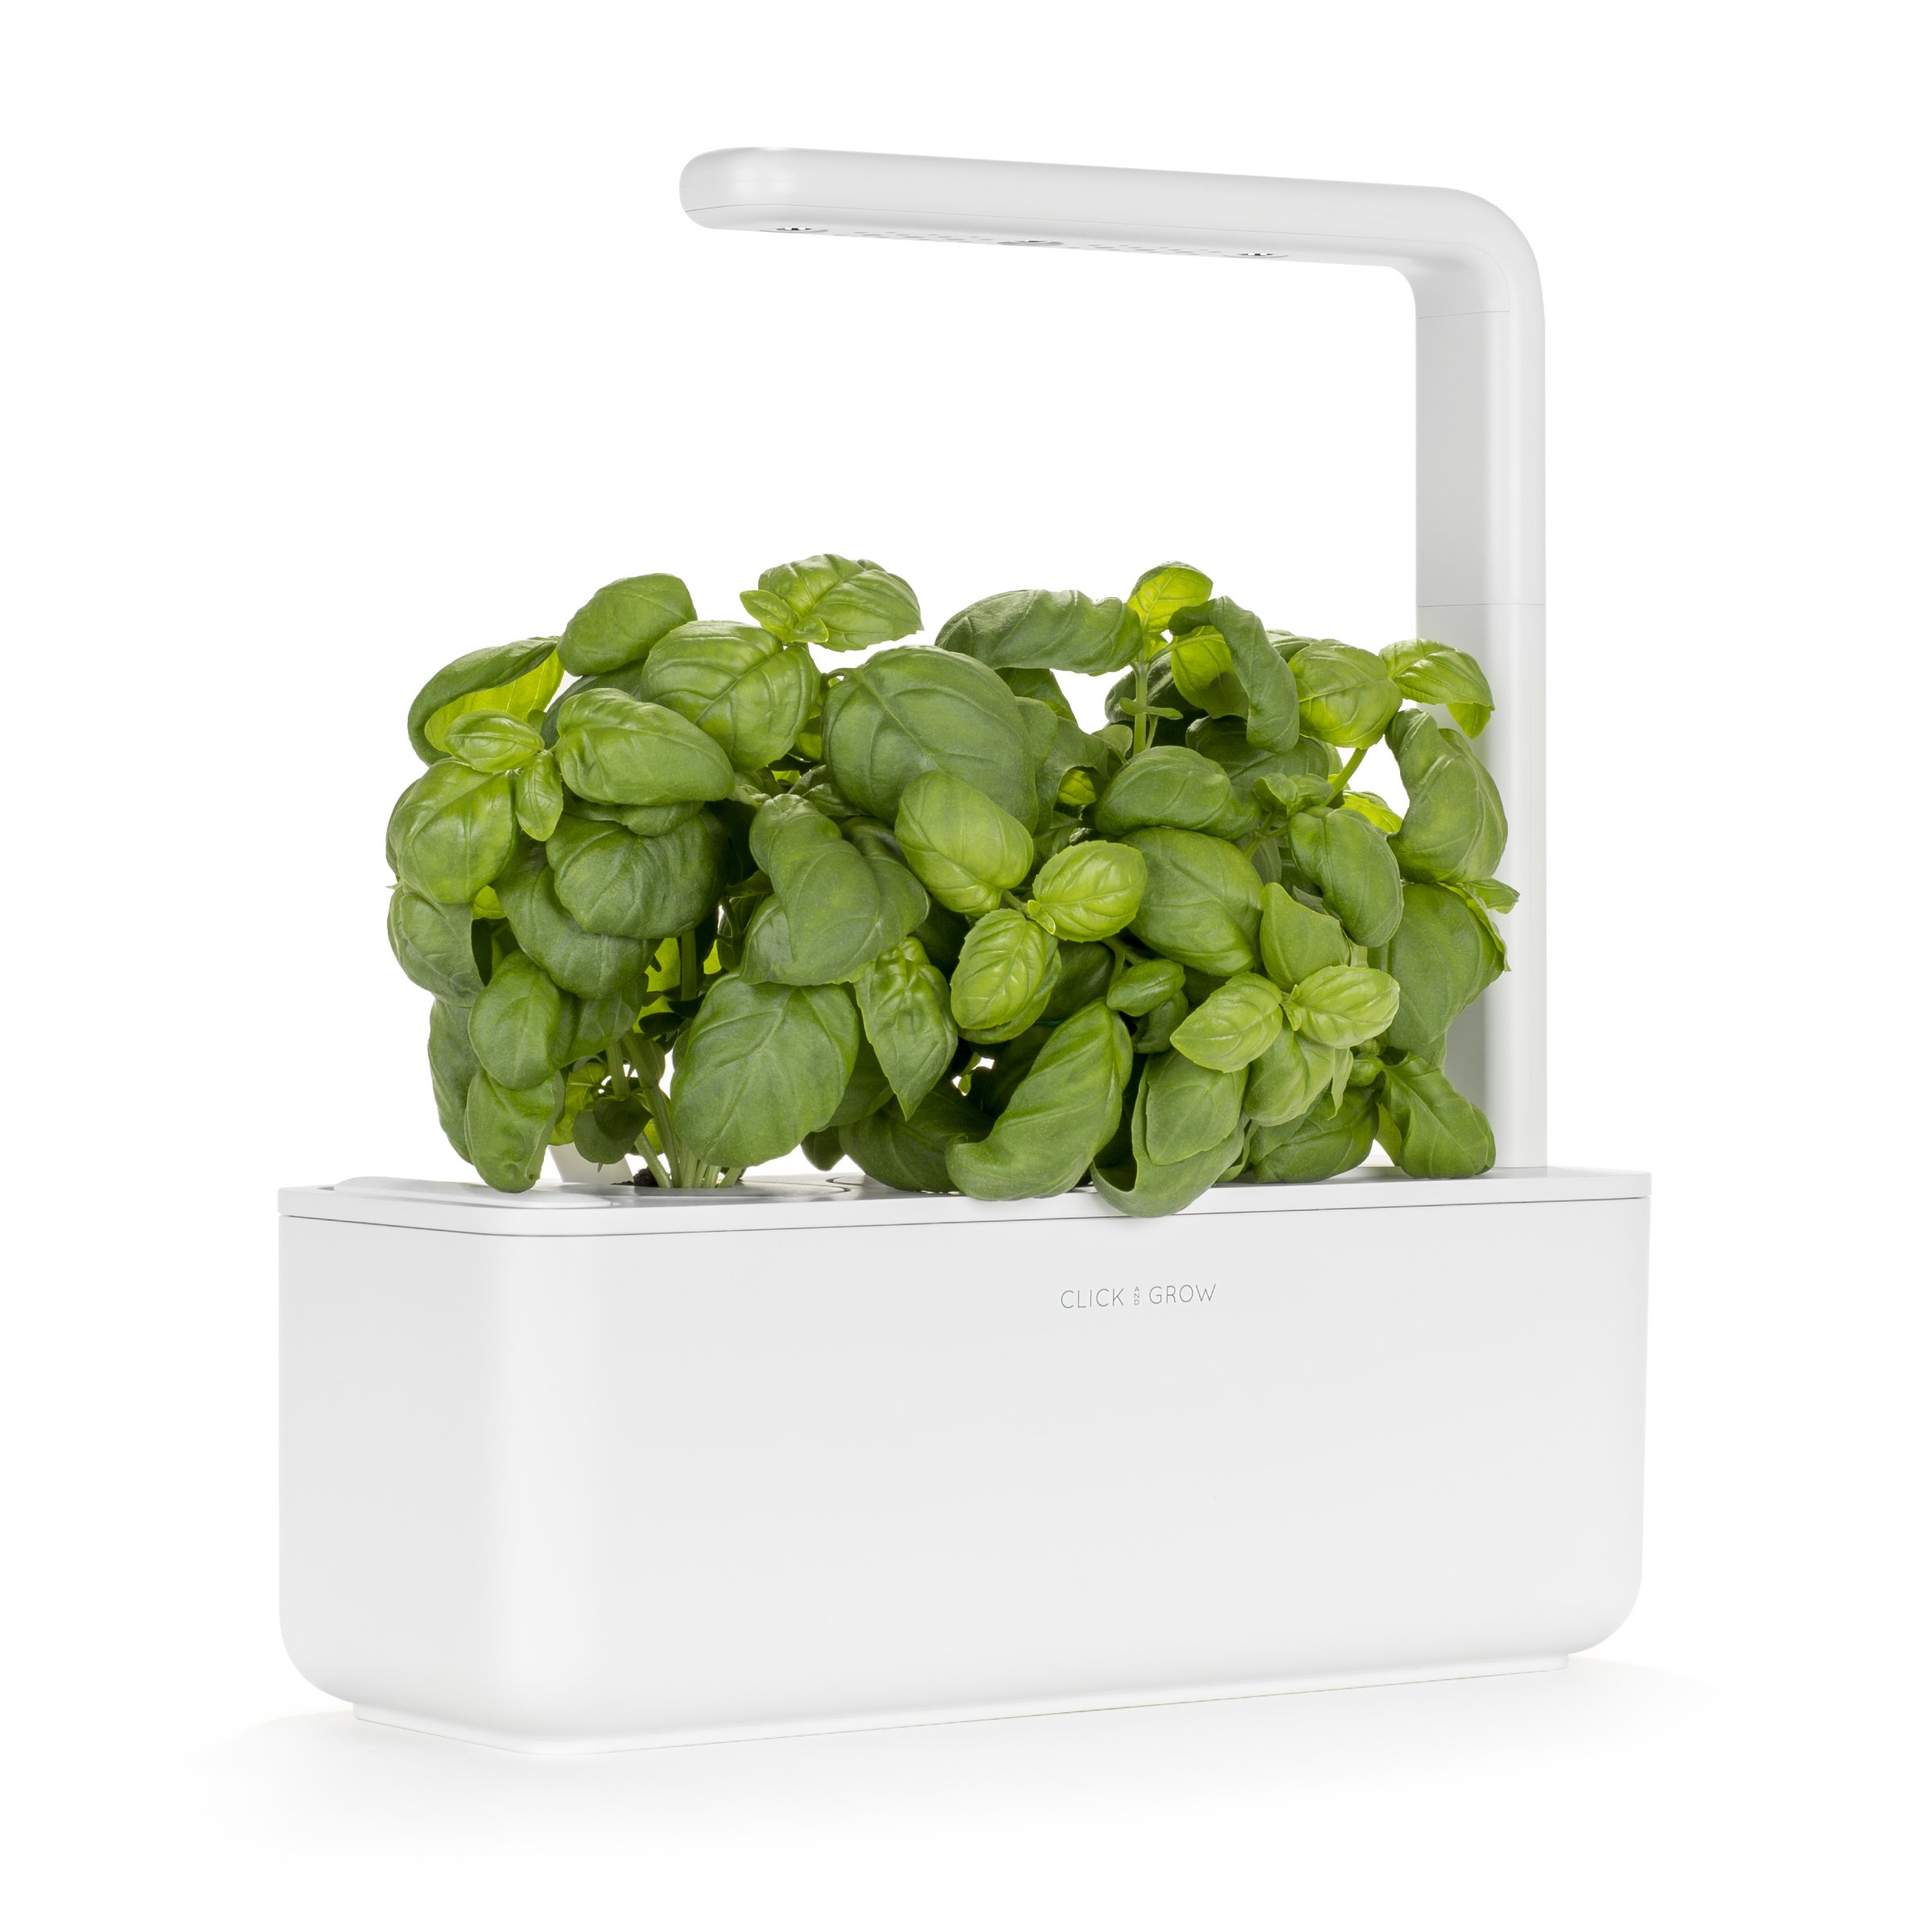 Click and Grow Smart Garden 3 Indoor Gardening Kit (Includes Basil Capsules), White